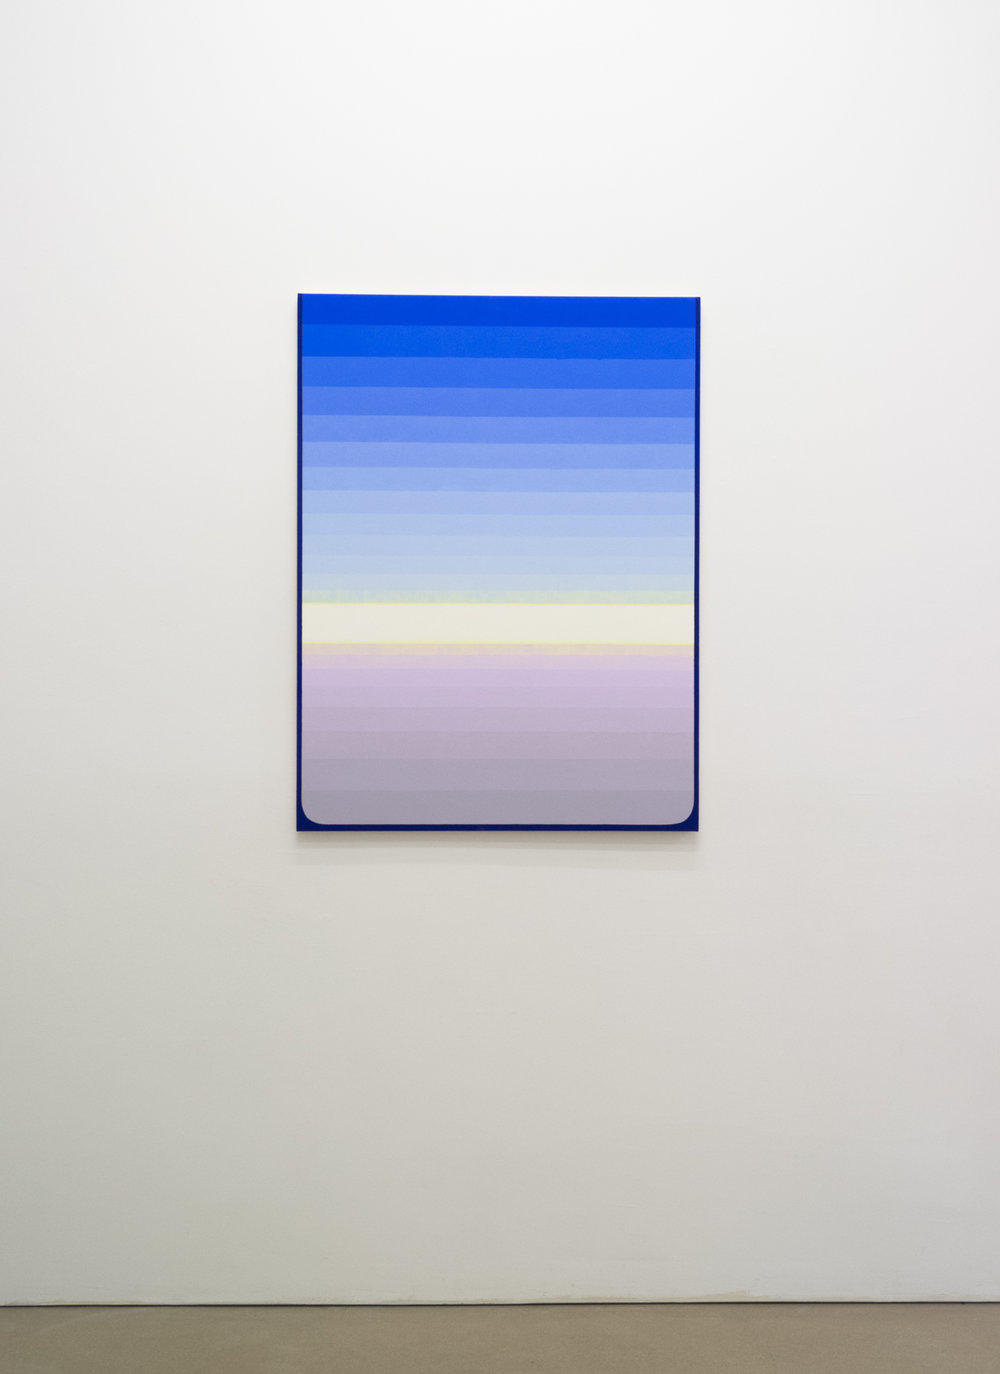 2 - 2018 - Morgan Lehman Gallery, NYC (2).jpg